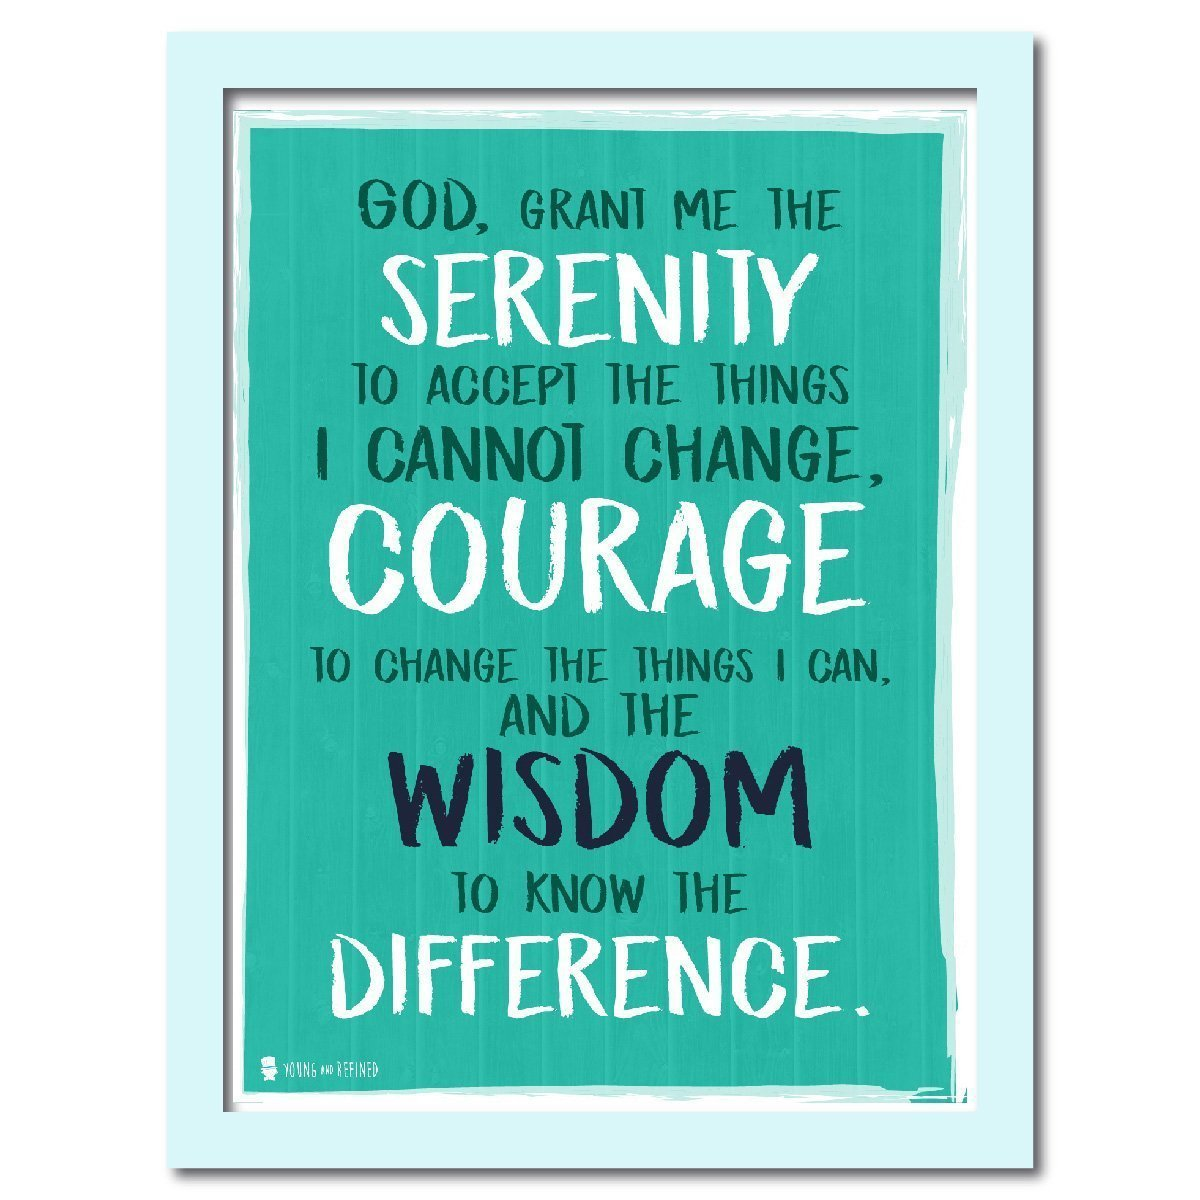 Serenity prayer wall art perfect for decorating kitchens homes bathrooms bedrooms hallways Aqua - Young N' Refined